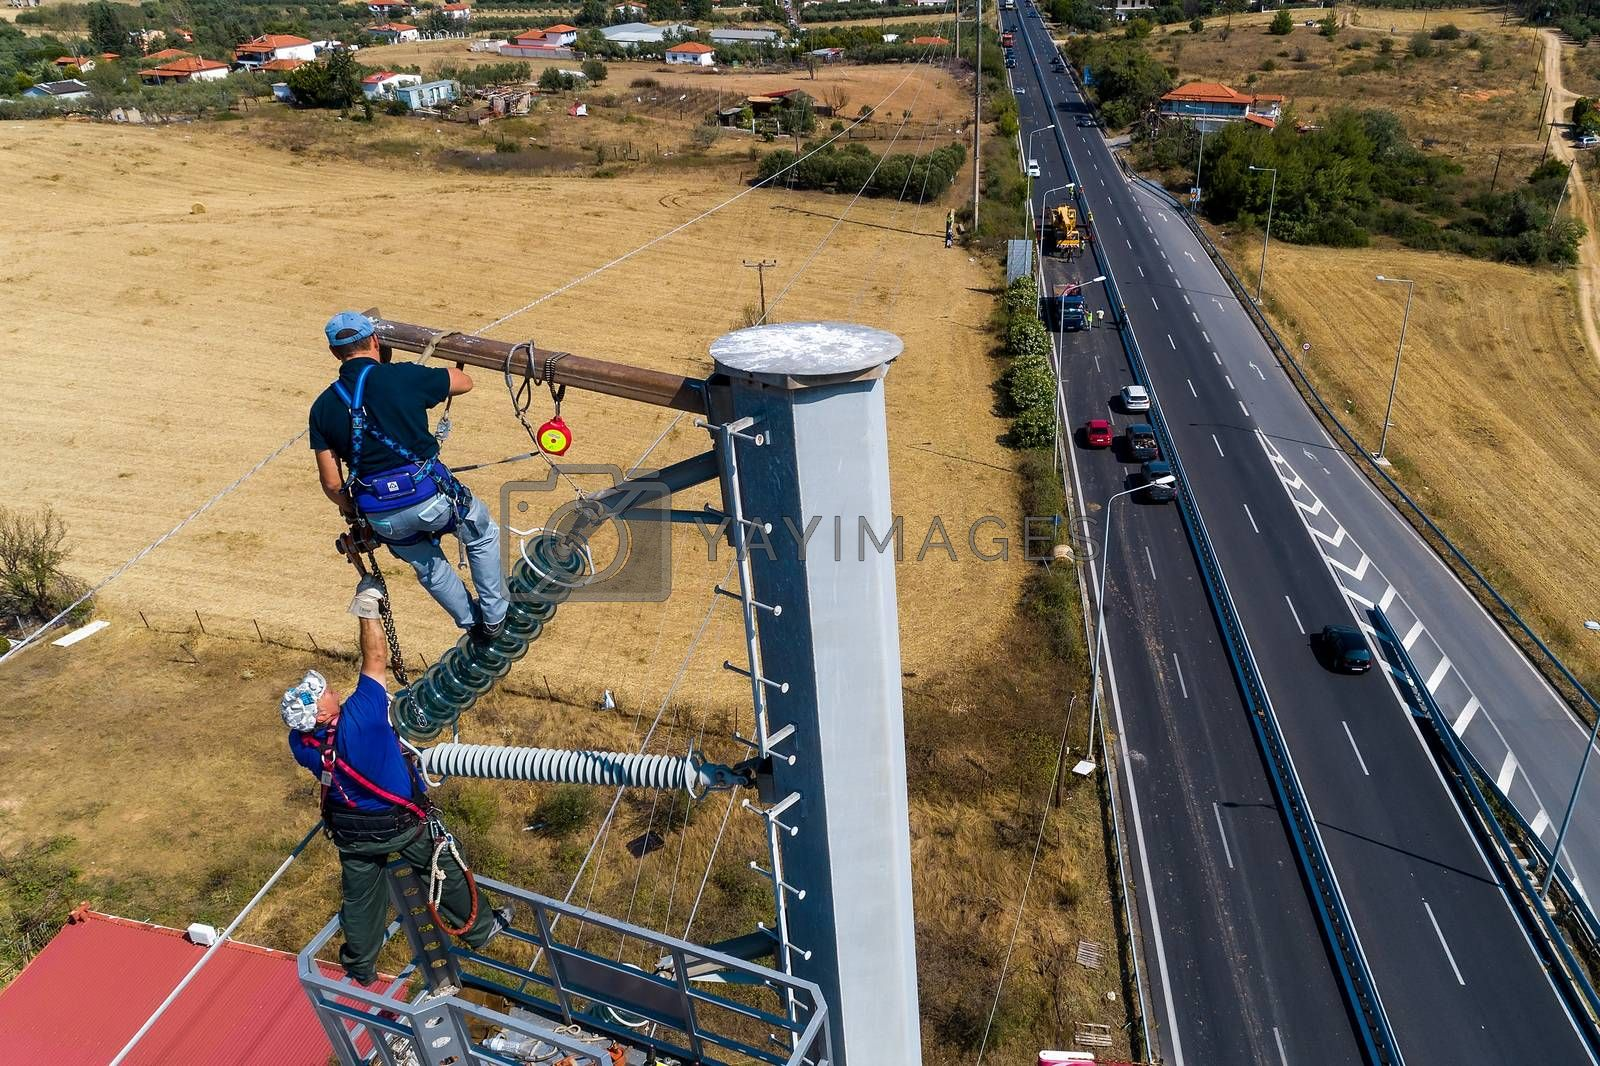 Chalkidiki, Greece - July 12, 2019: Electricians are climbing on electric poles to install and repair power lines after the fierce storm that struck the area